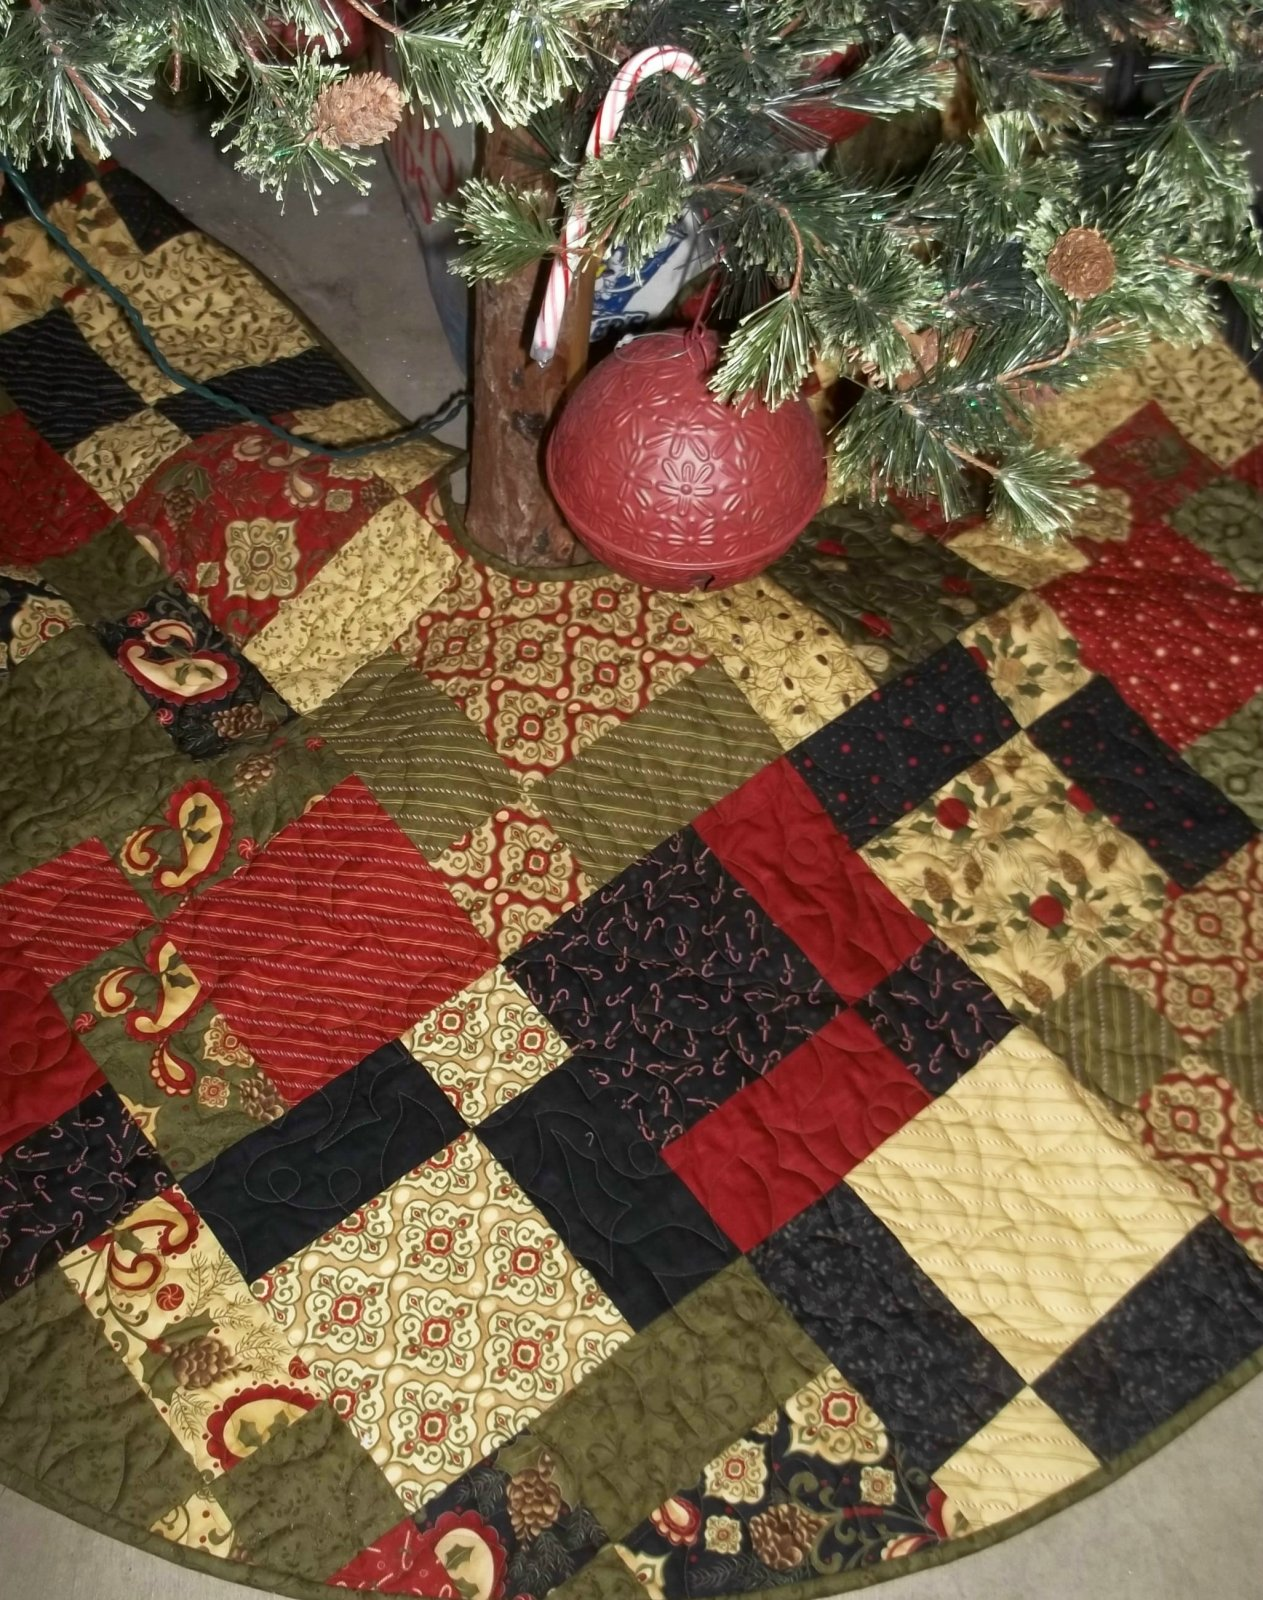 Christmas Tree Skirt Patterns.Christmas Tree Skirt Patterns